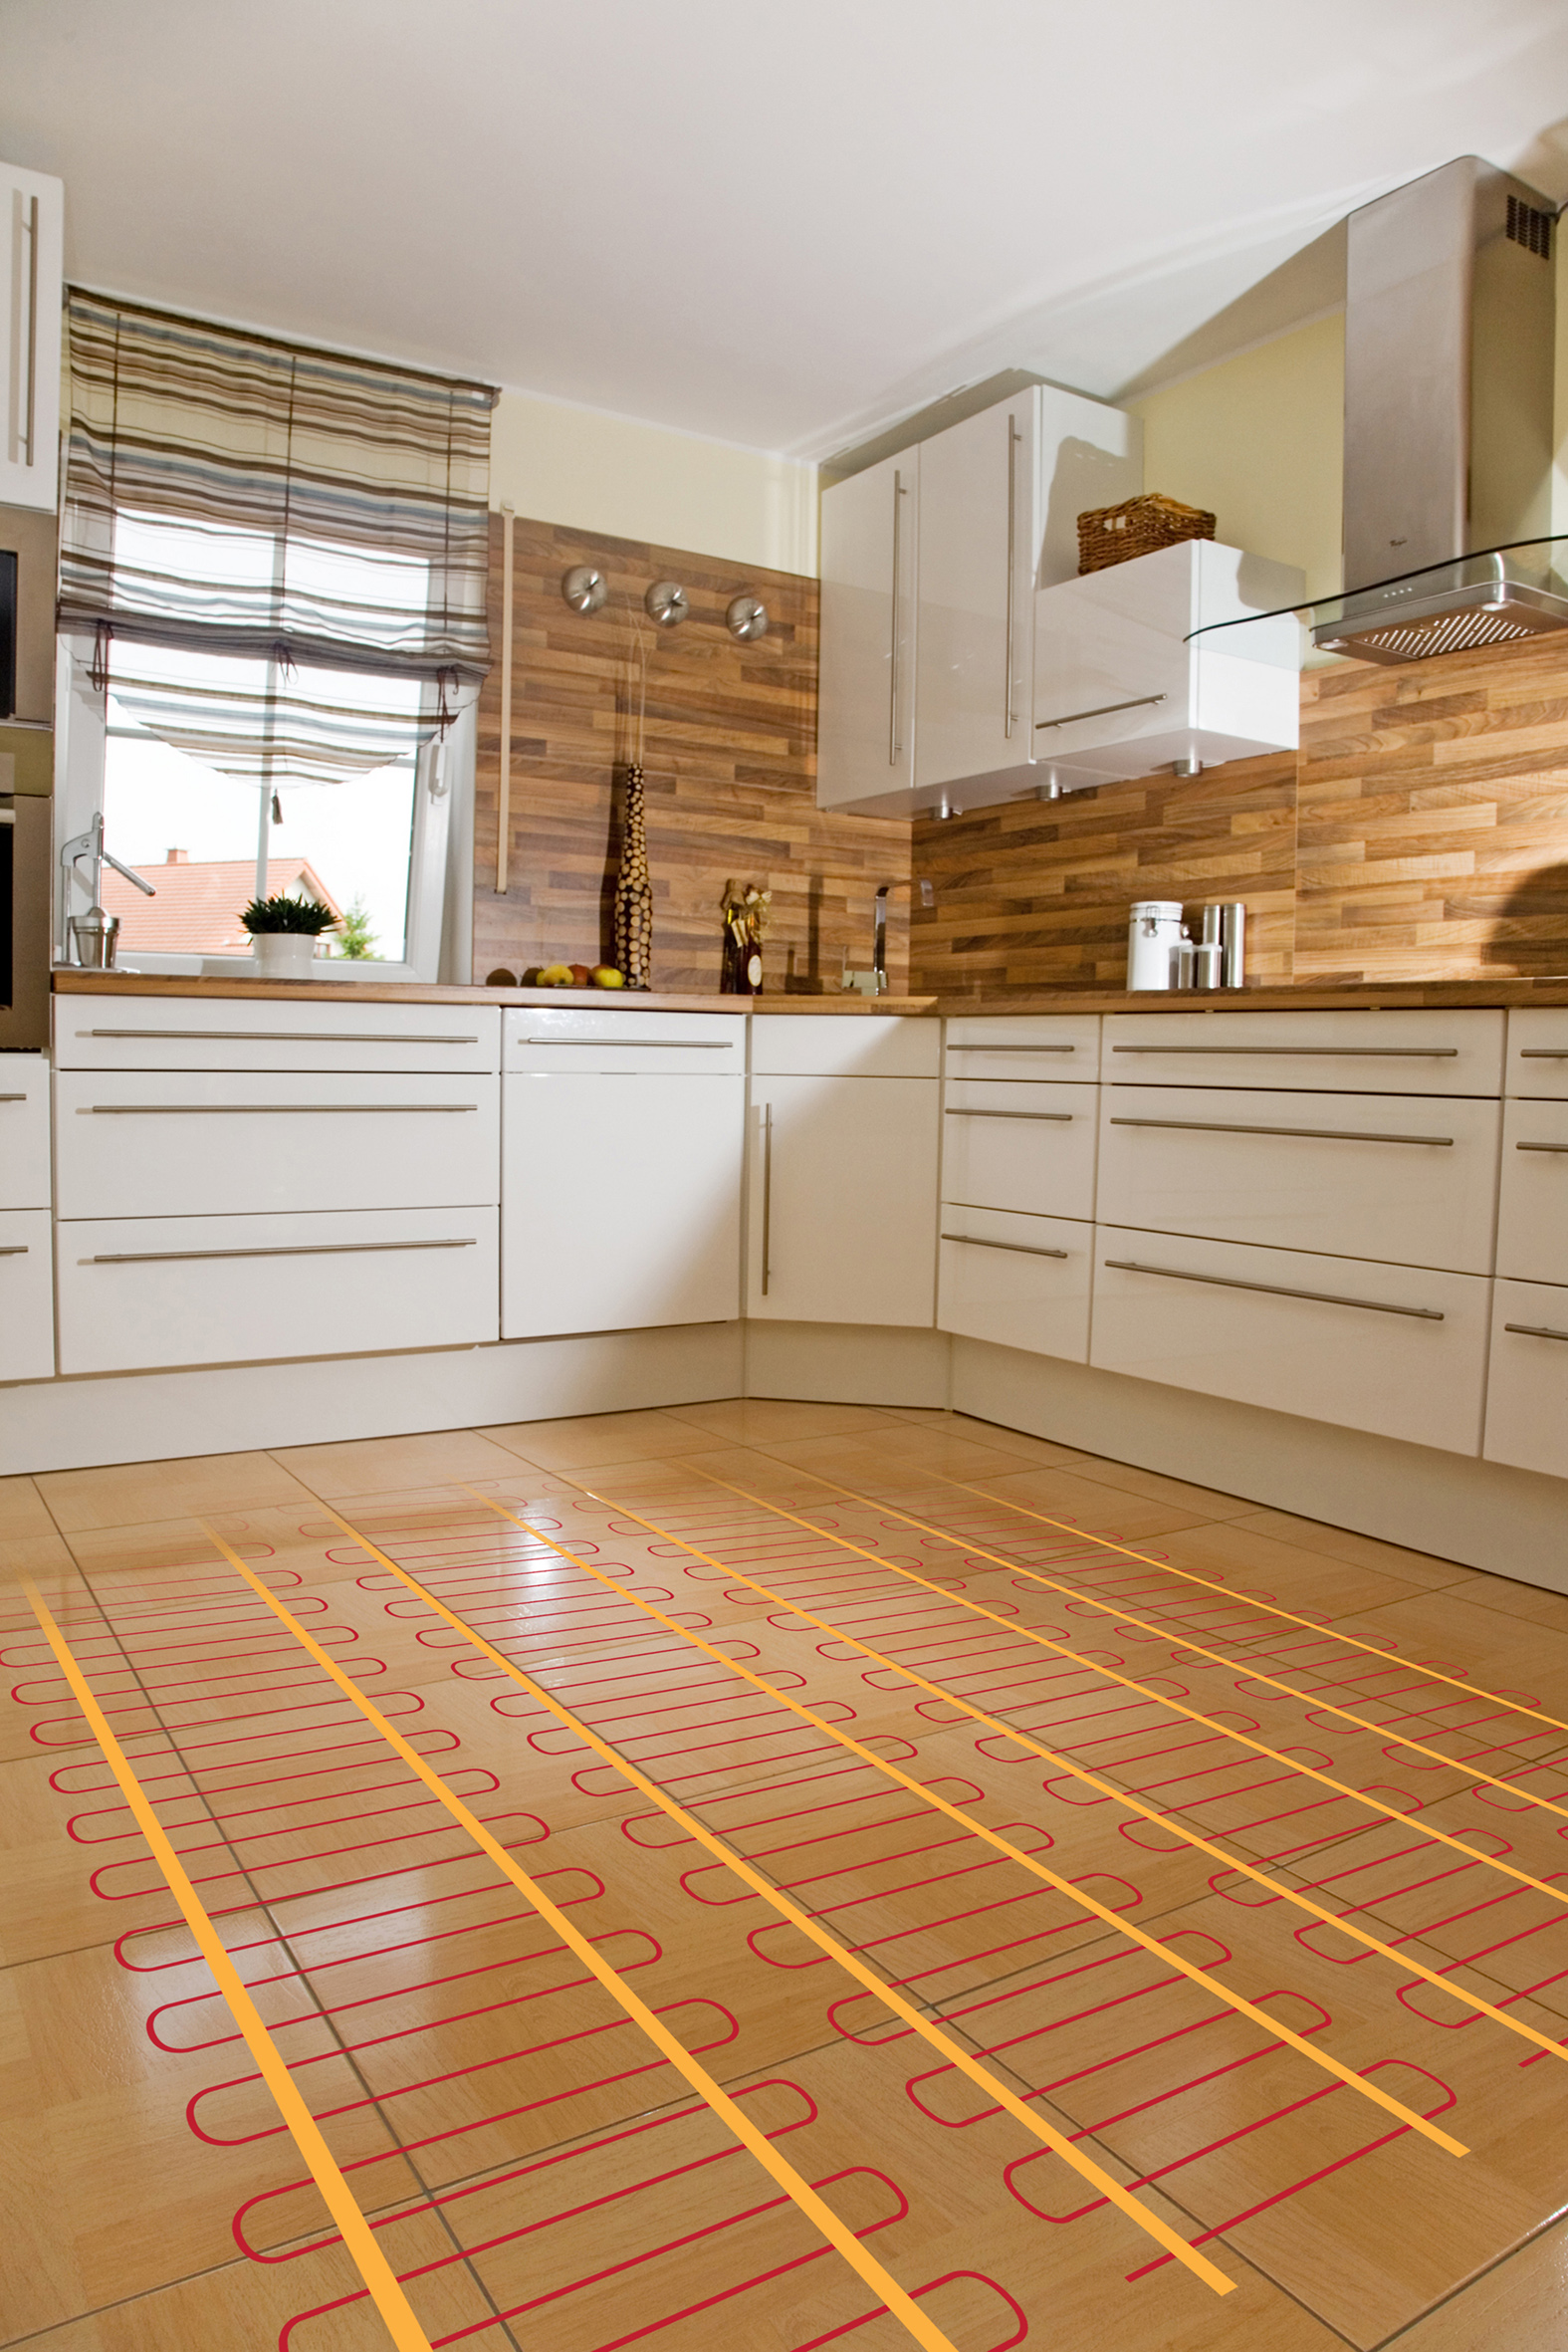 Did You Know Electric Tankless Water Heaters Are Great For Radiant - How to do radiant floor heating